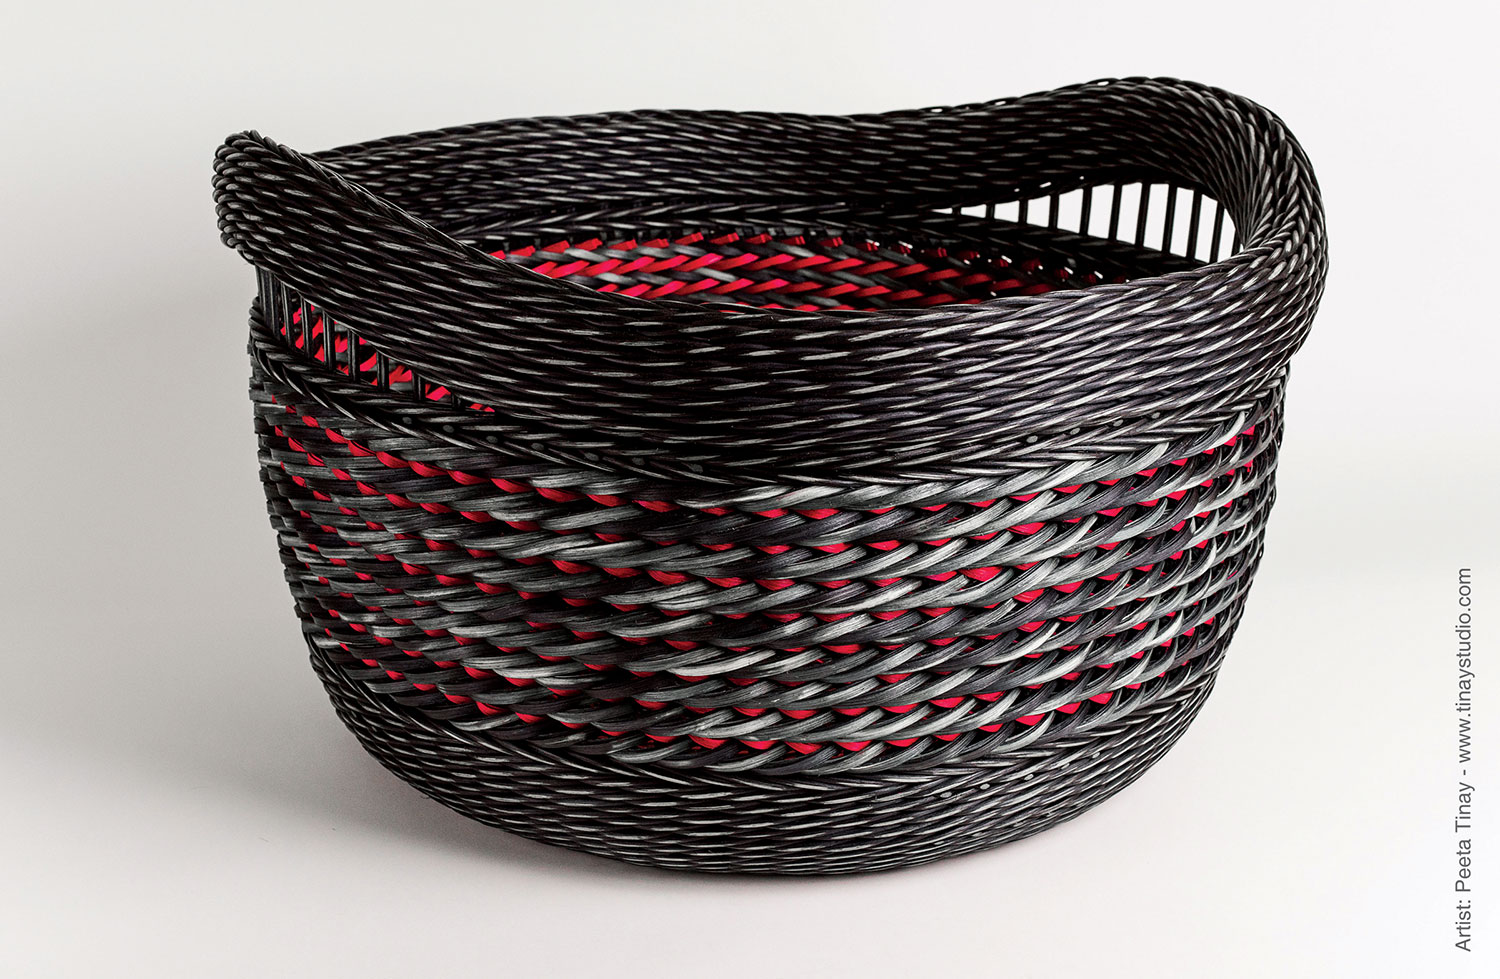 Peeta-Tinay-red-black-basket.jpg